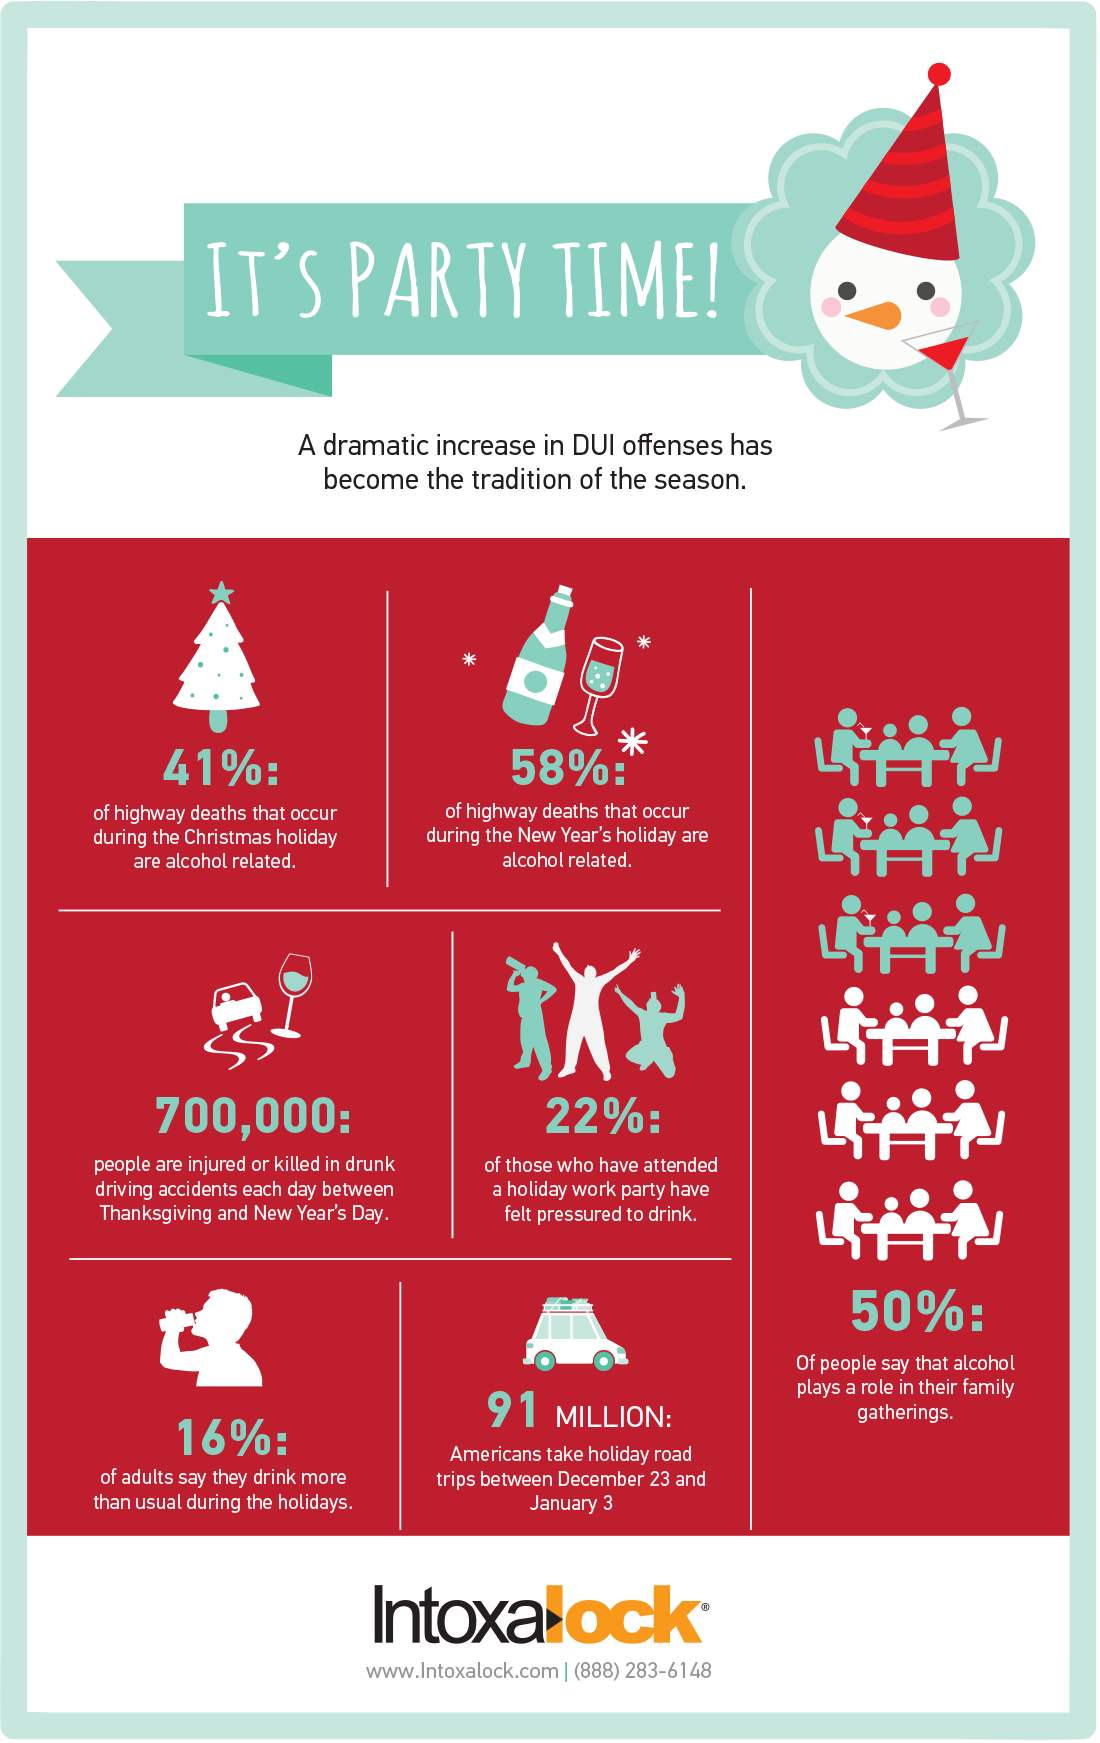 Holiday DUI statistics infographic